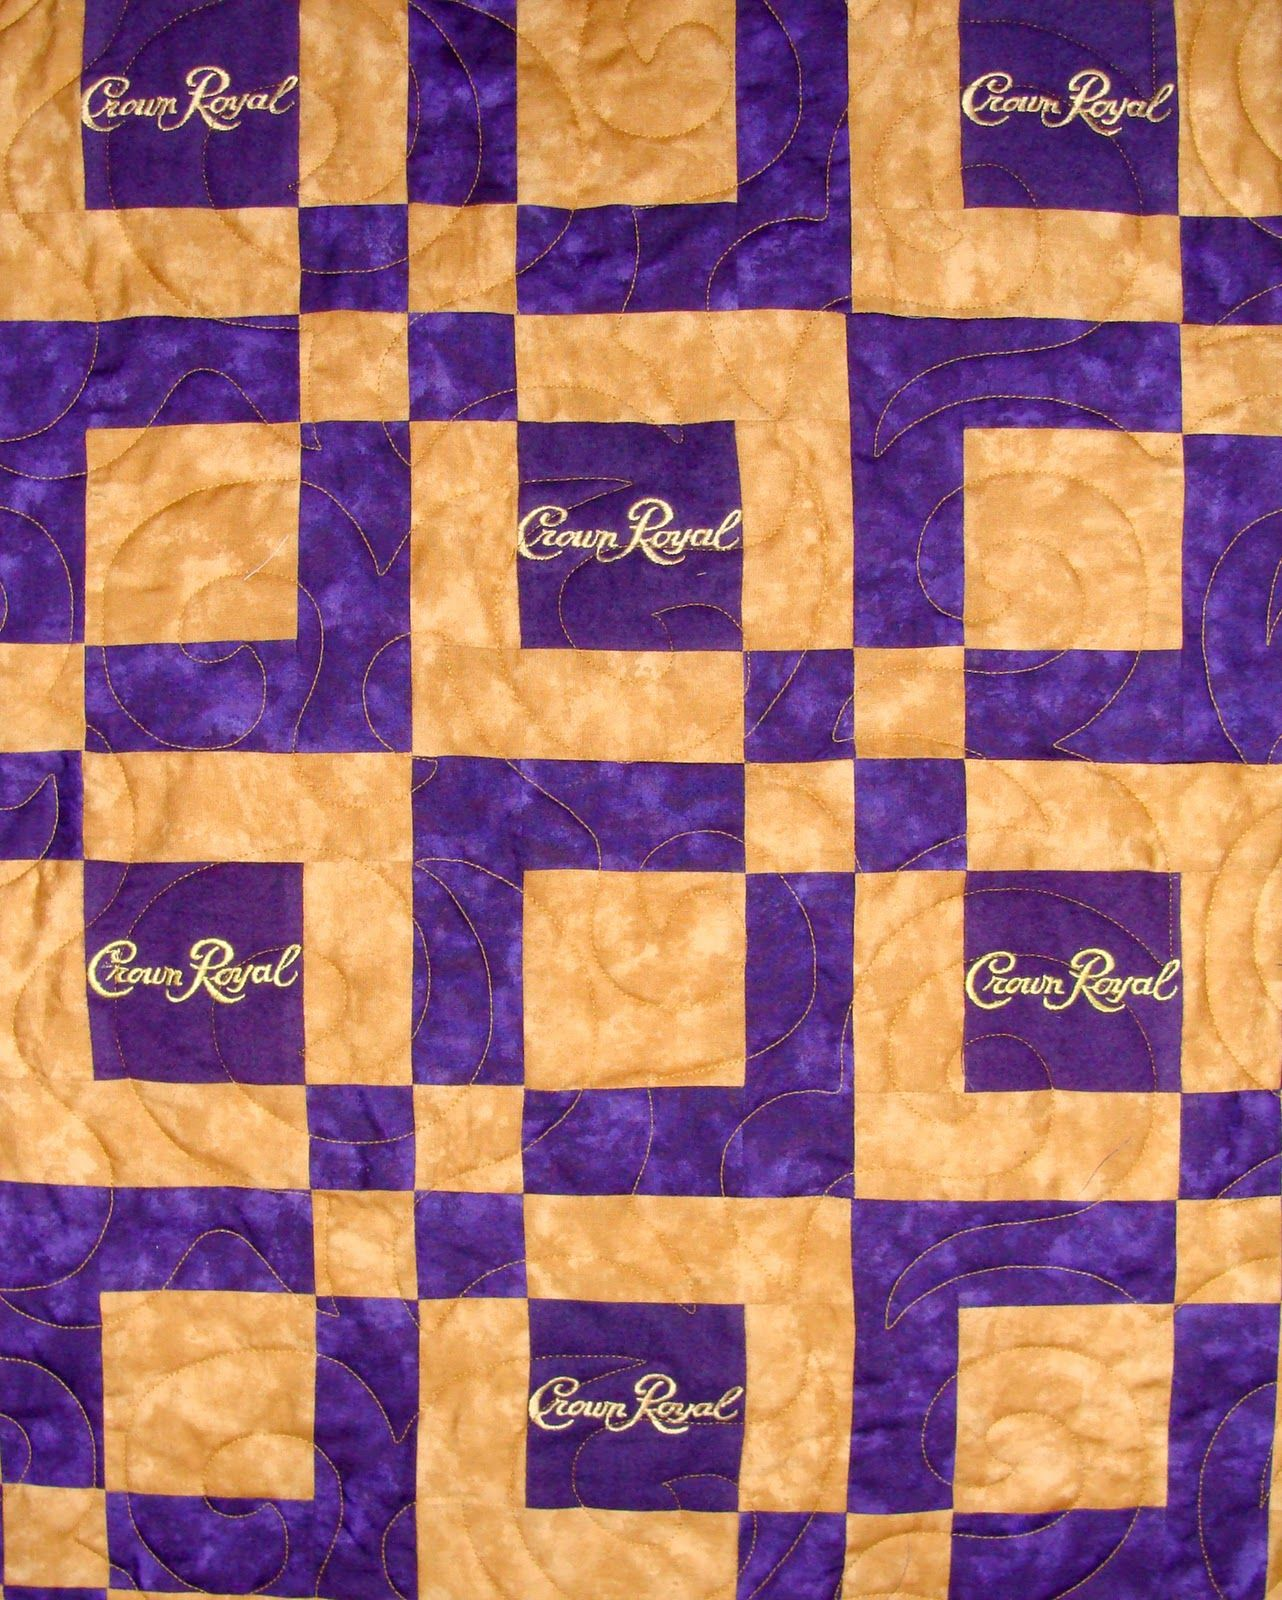 Linda Teddlie Minton: Crown Royal, anyone? | quilt projects ... : quilt made from crown royal bags - Adamdwight.com